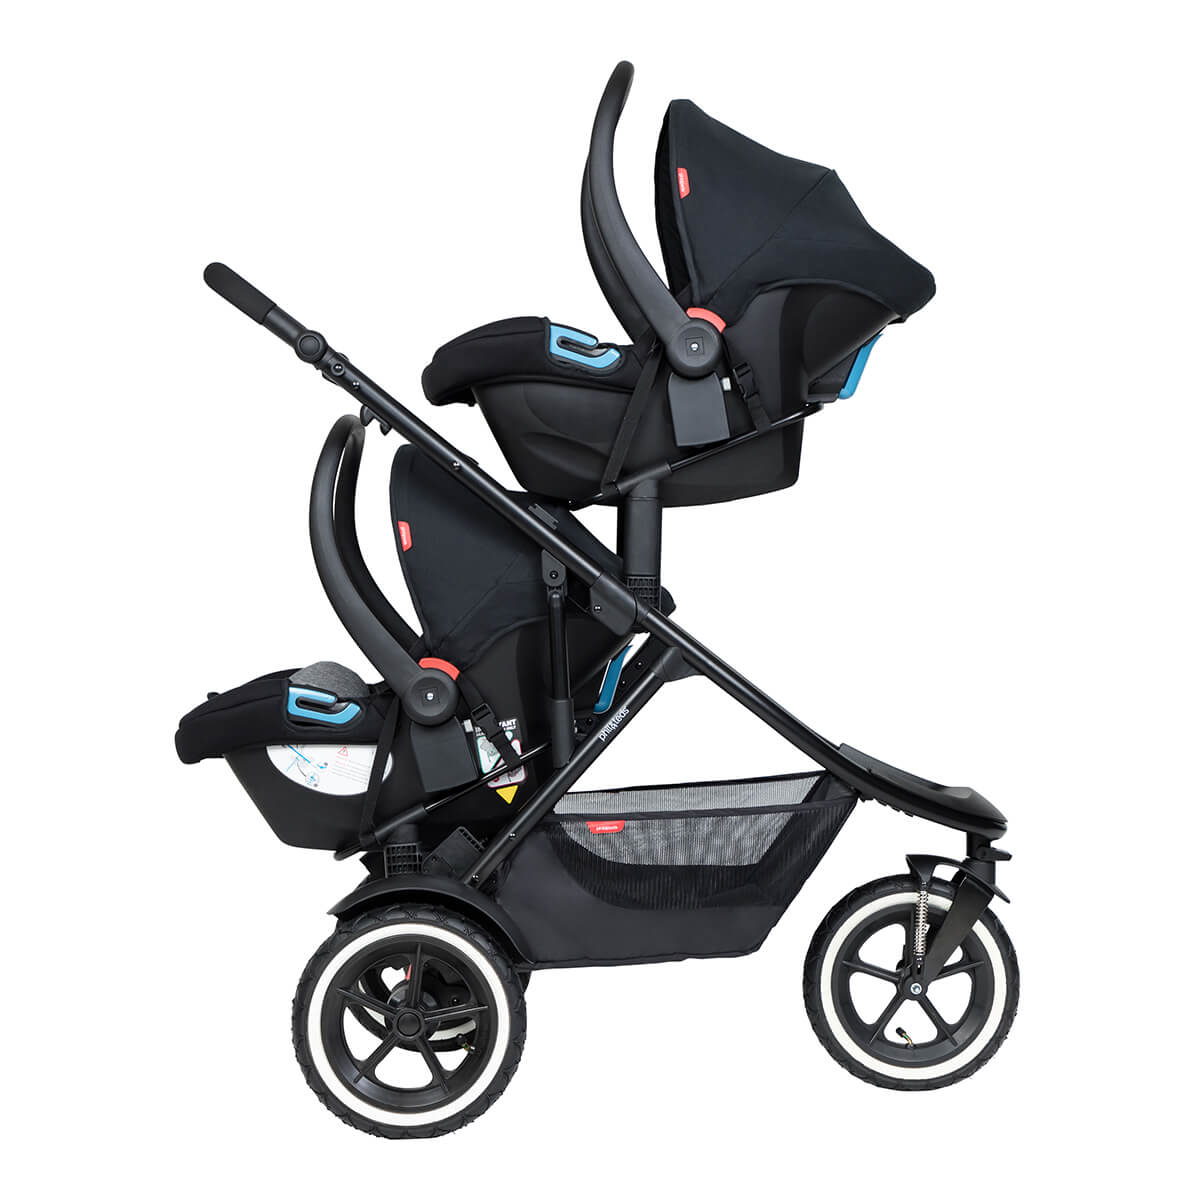 https://cdn.accentuate.io/4546158133353/19119322923113/philteds-sport-buggy-with-double-alpha-travel-system-v1625778405033.jpg?1200x1200